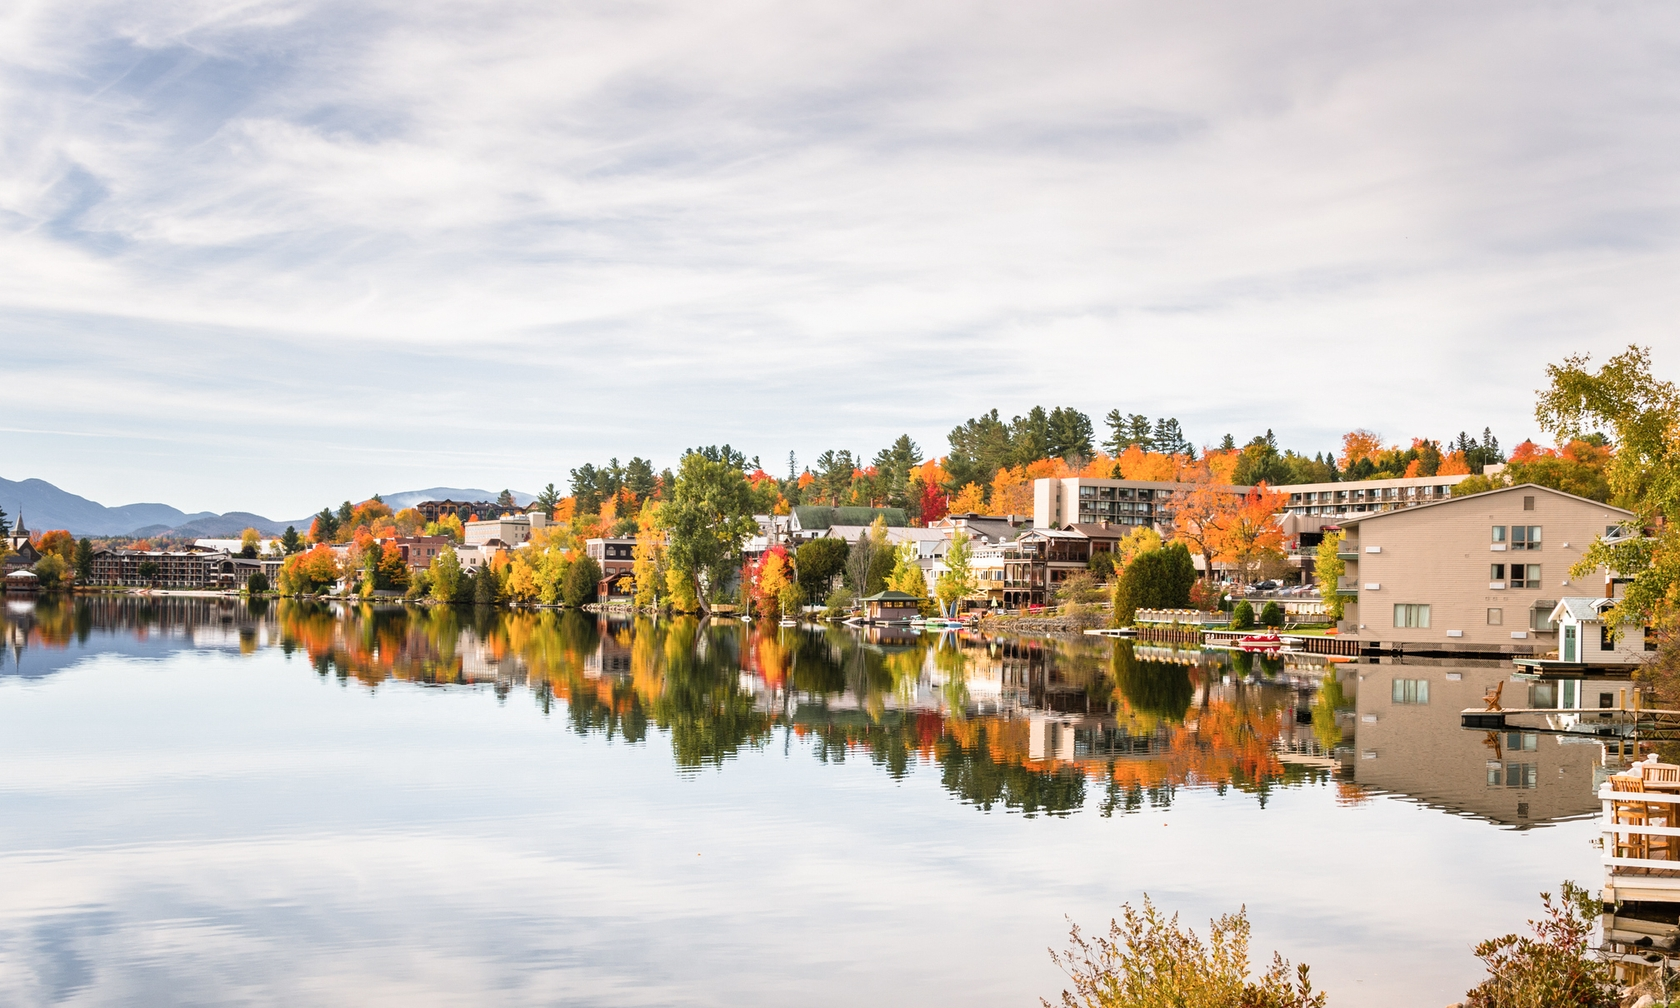 Cabin and lodging rentals in Lake Placid